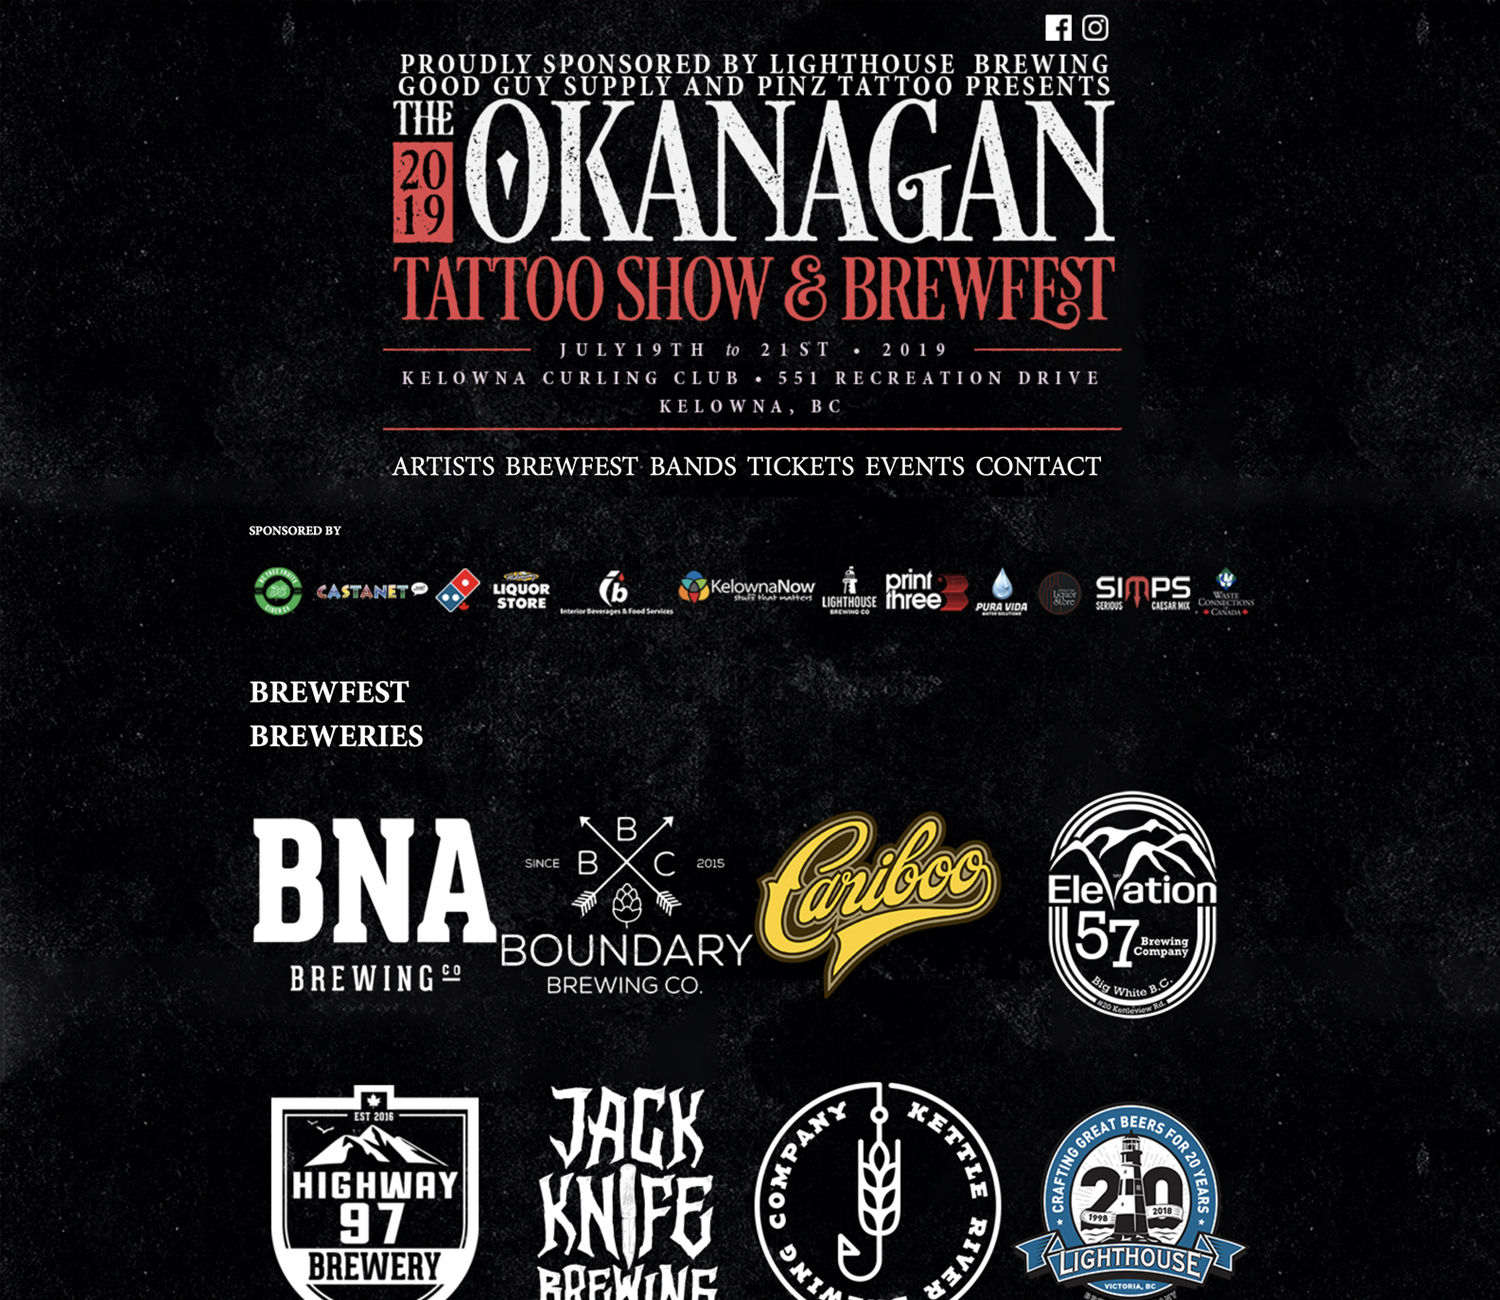 Okanagan Tattoo Show & Brew Fest 2019 Website